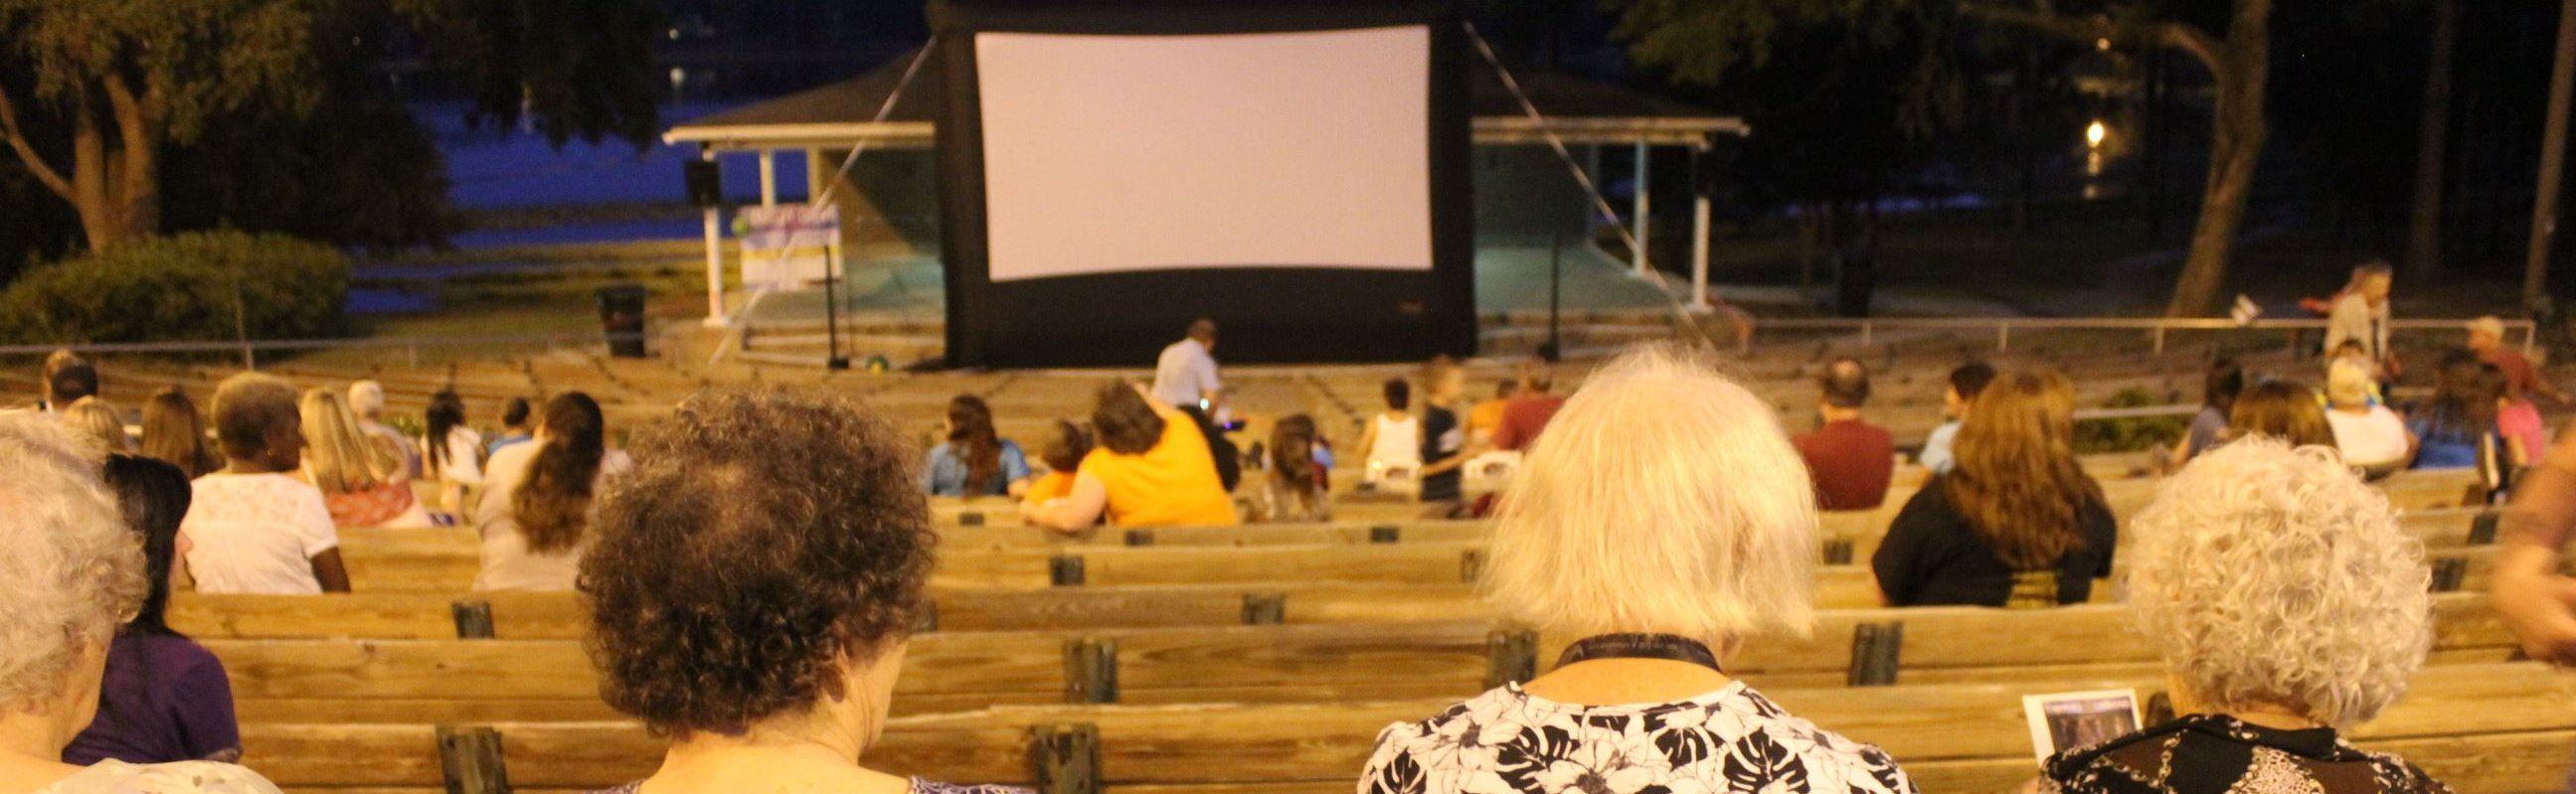 People watching an outdoor movie in an amphitheater